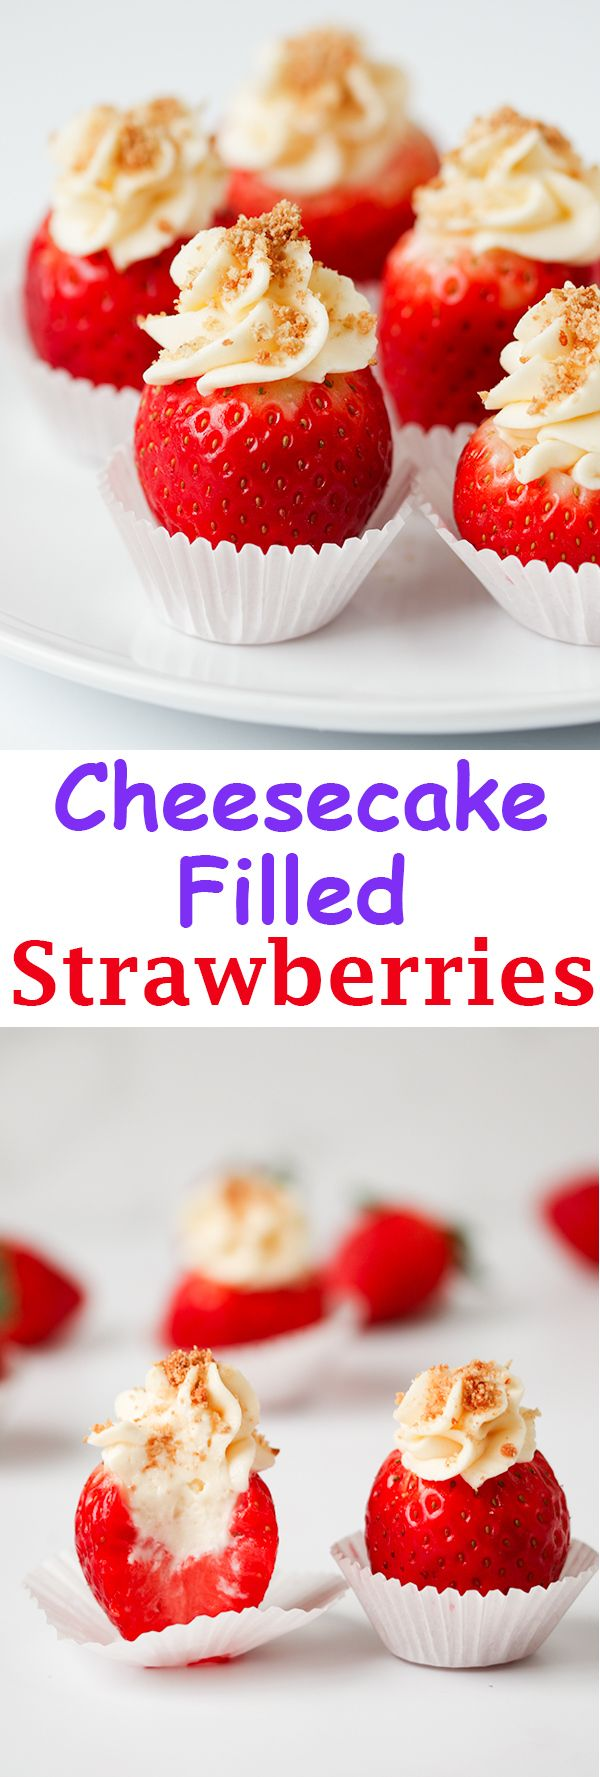 Cheesecake Stuffed Strawberries! An ultra-simple dessert - perfect for parties!